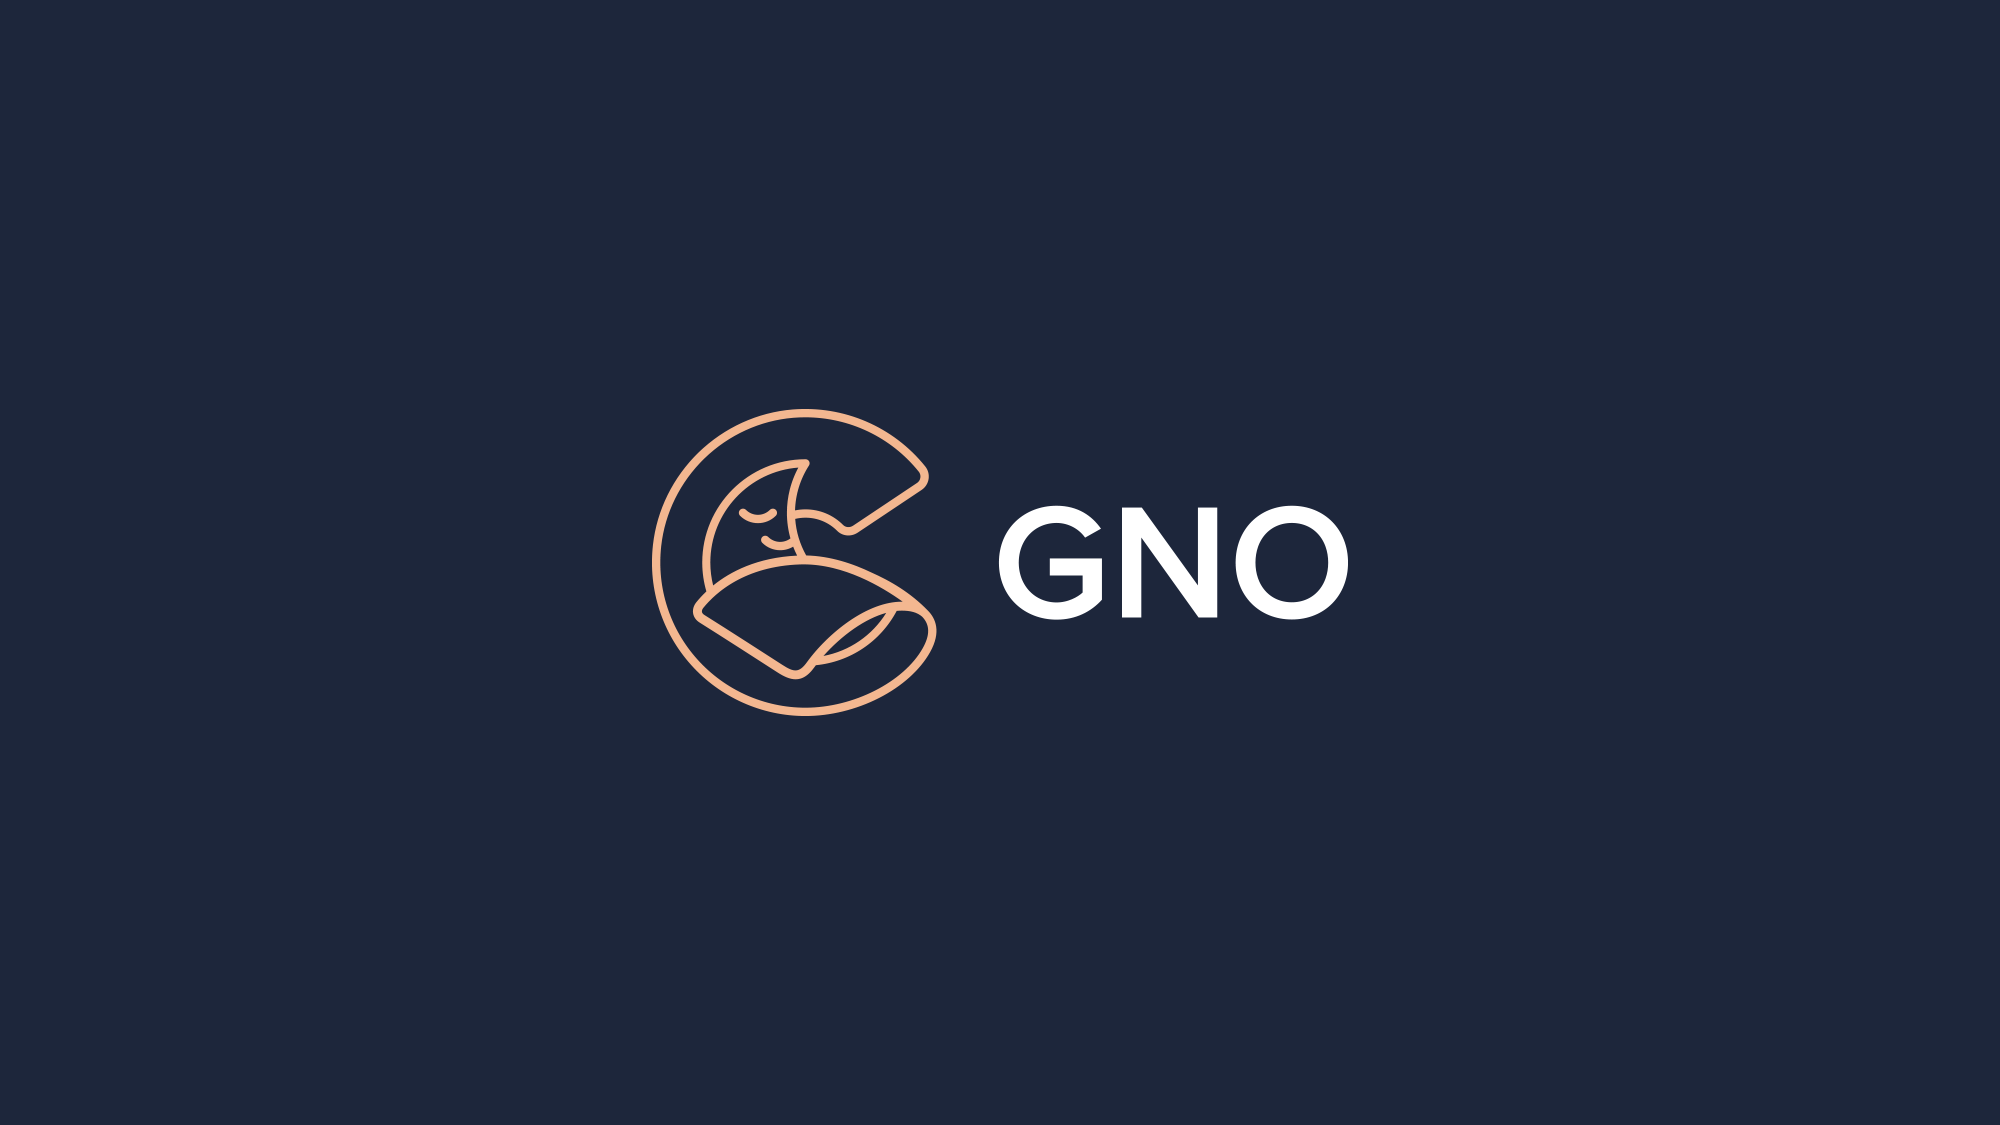 logo final gno branding design case study